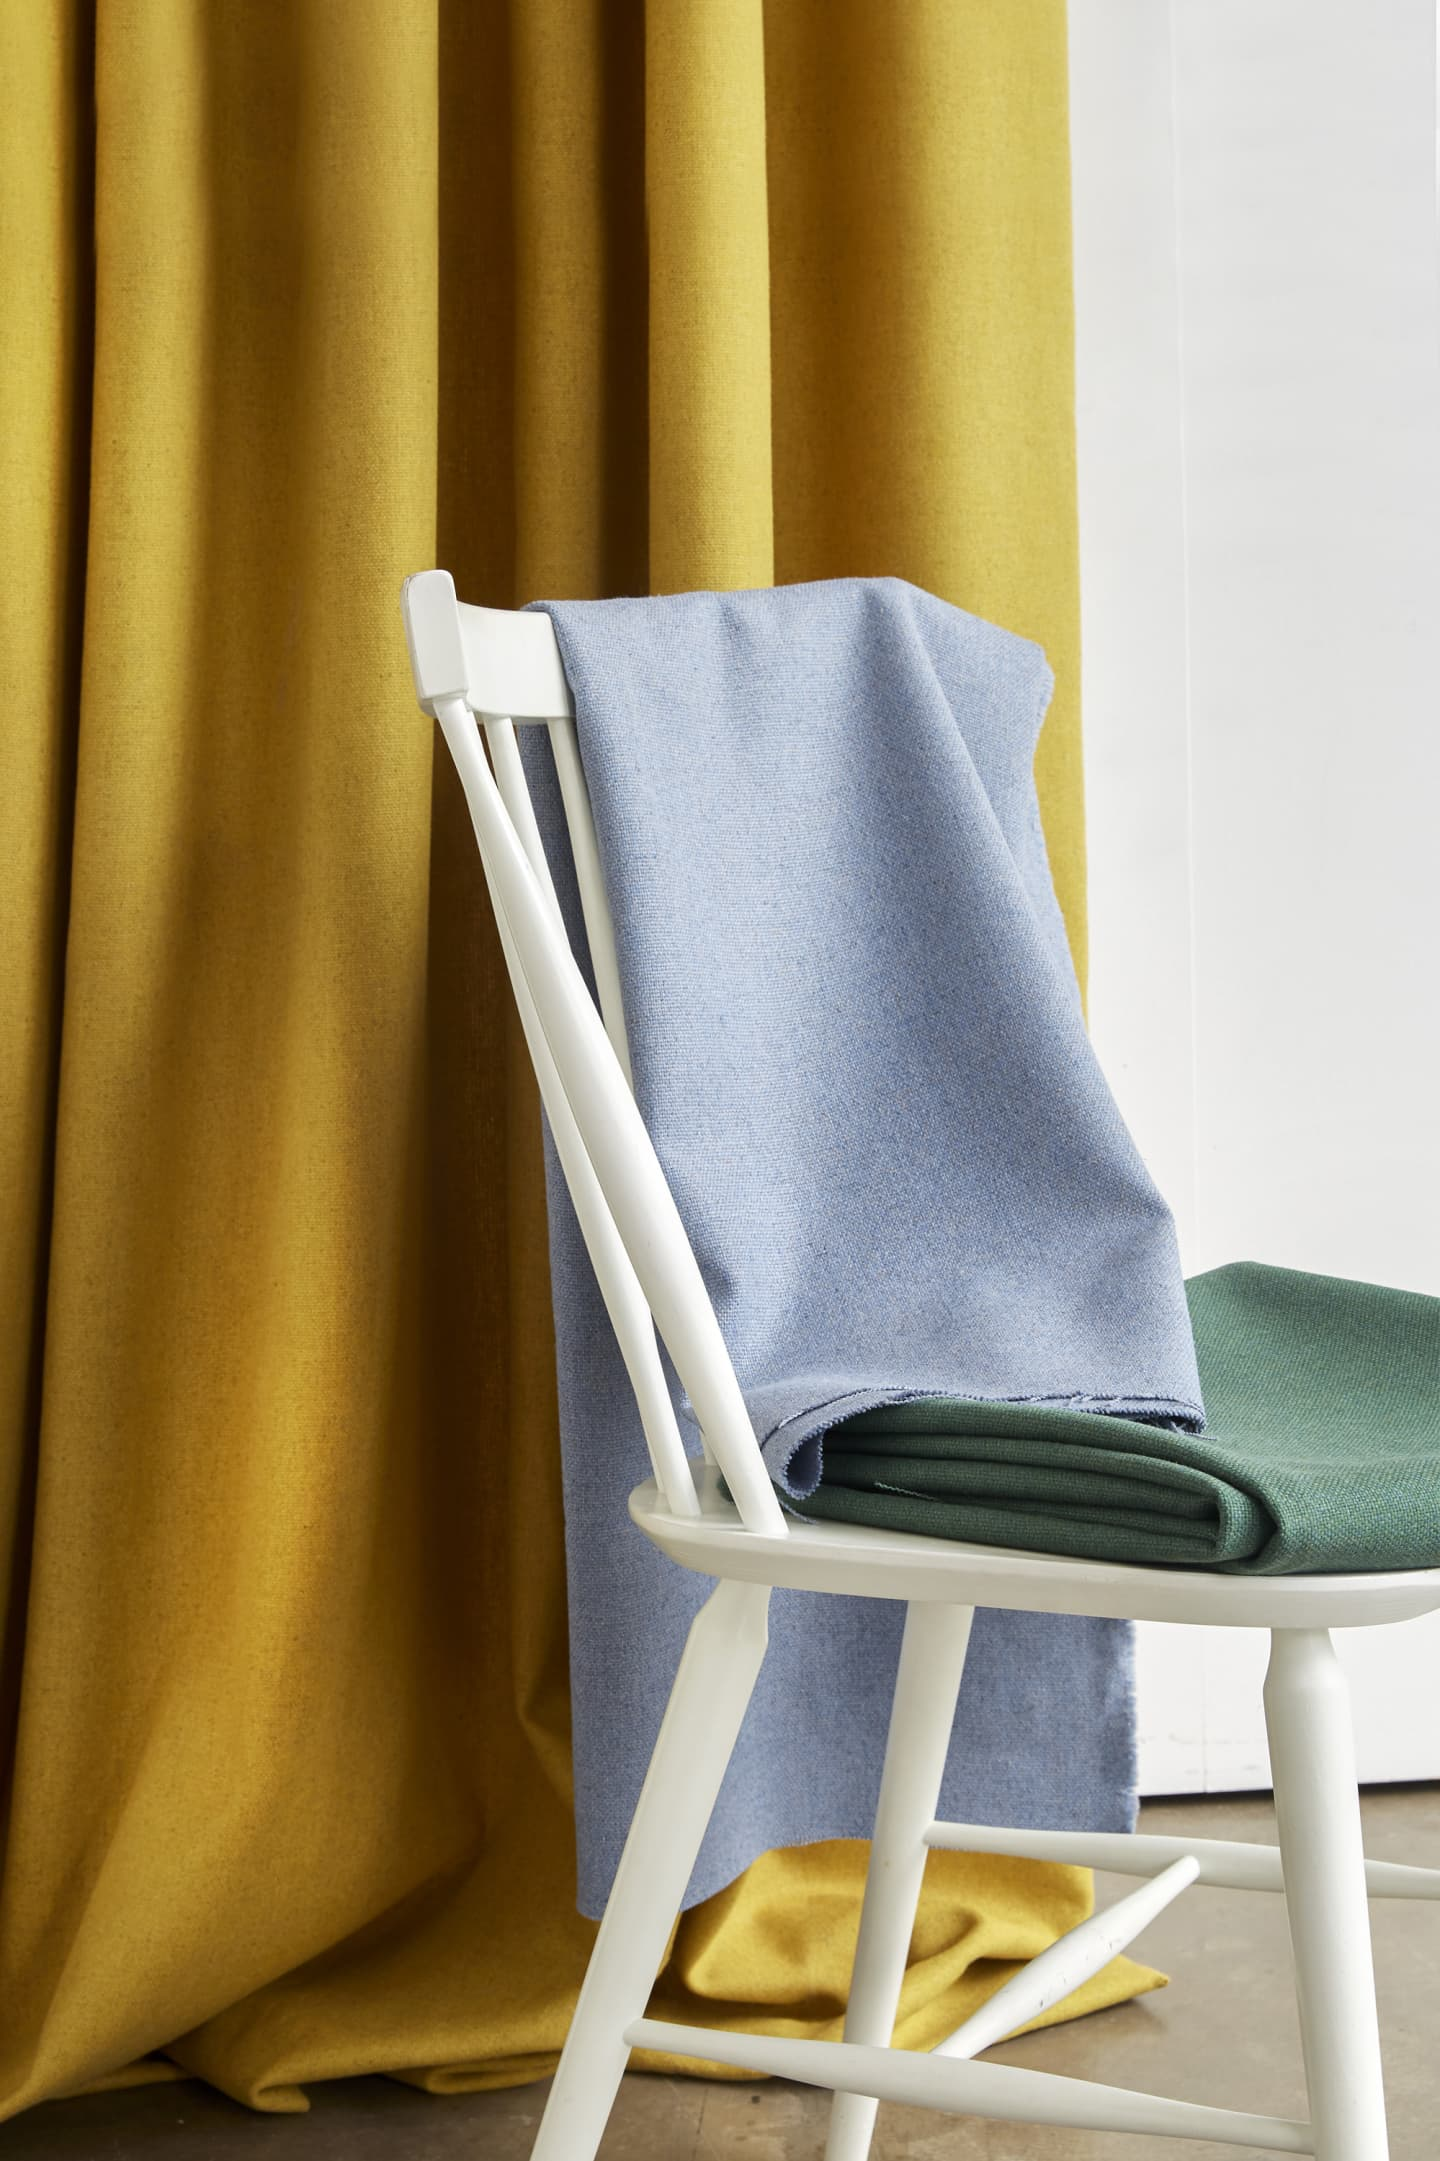 various curtains hung on chair